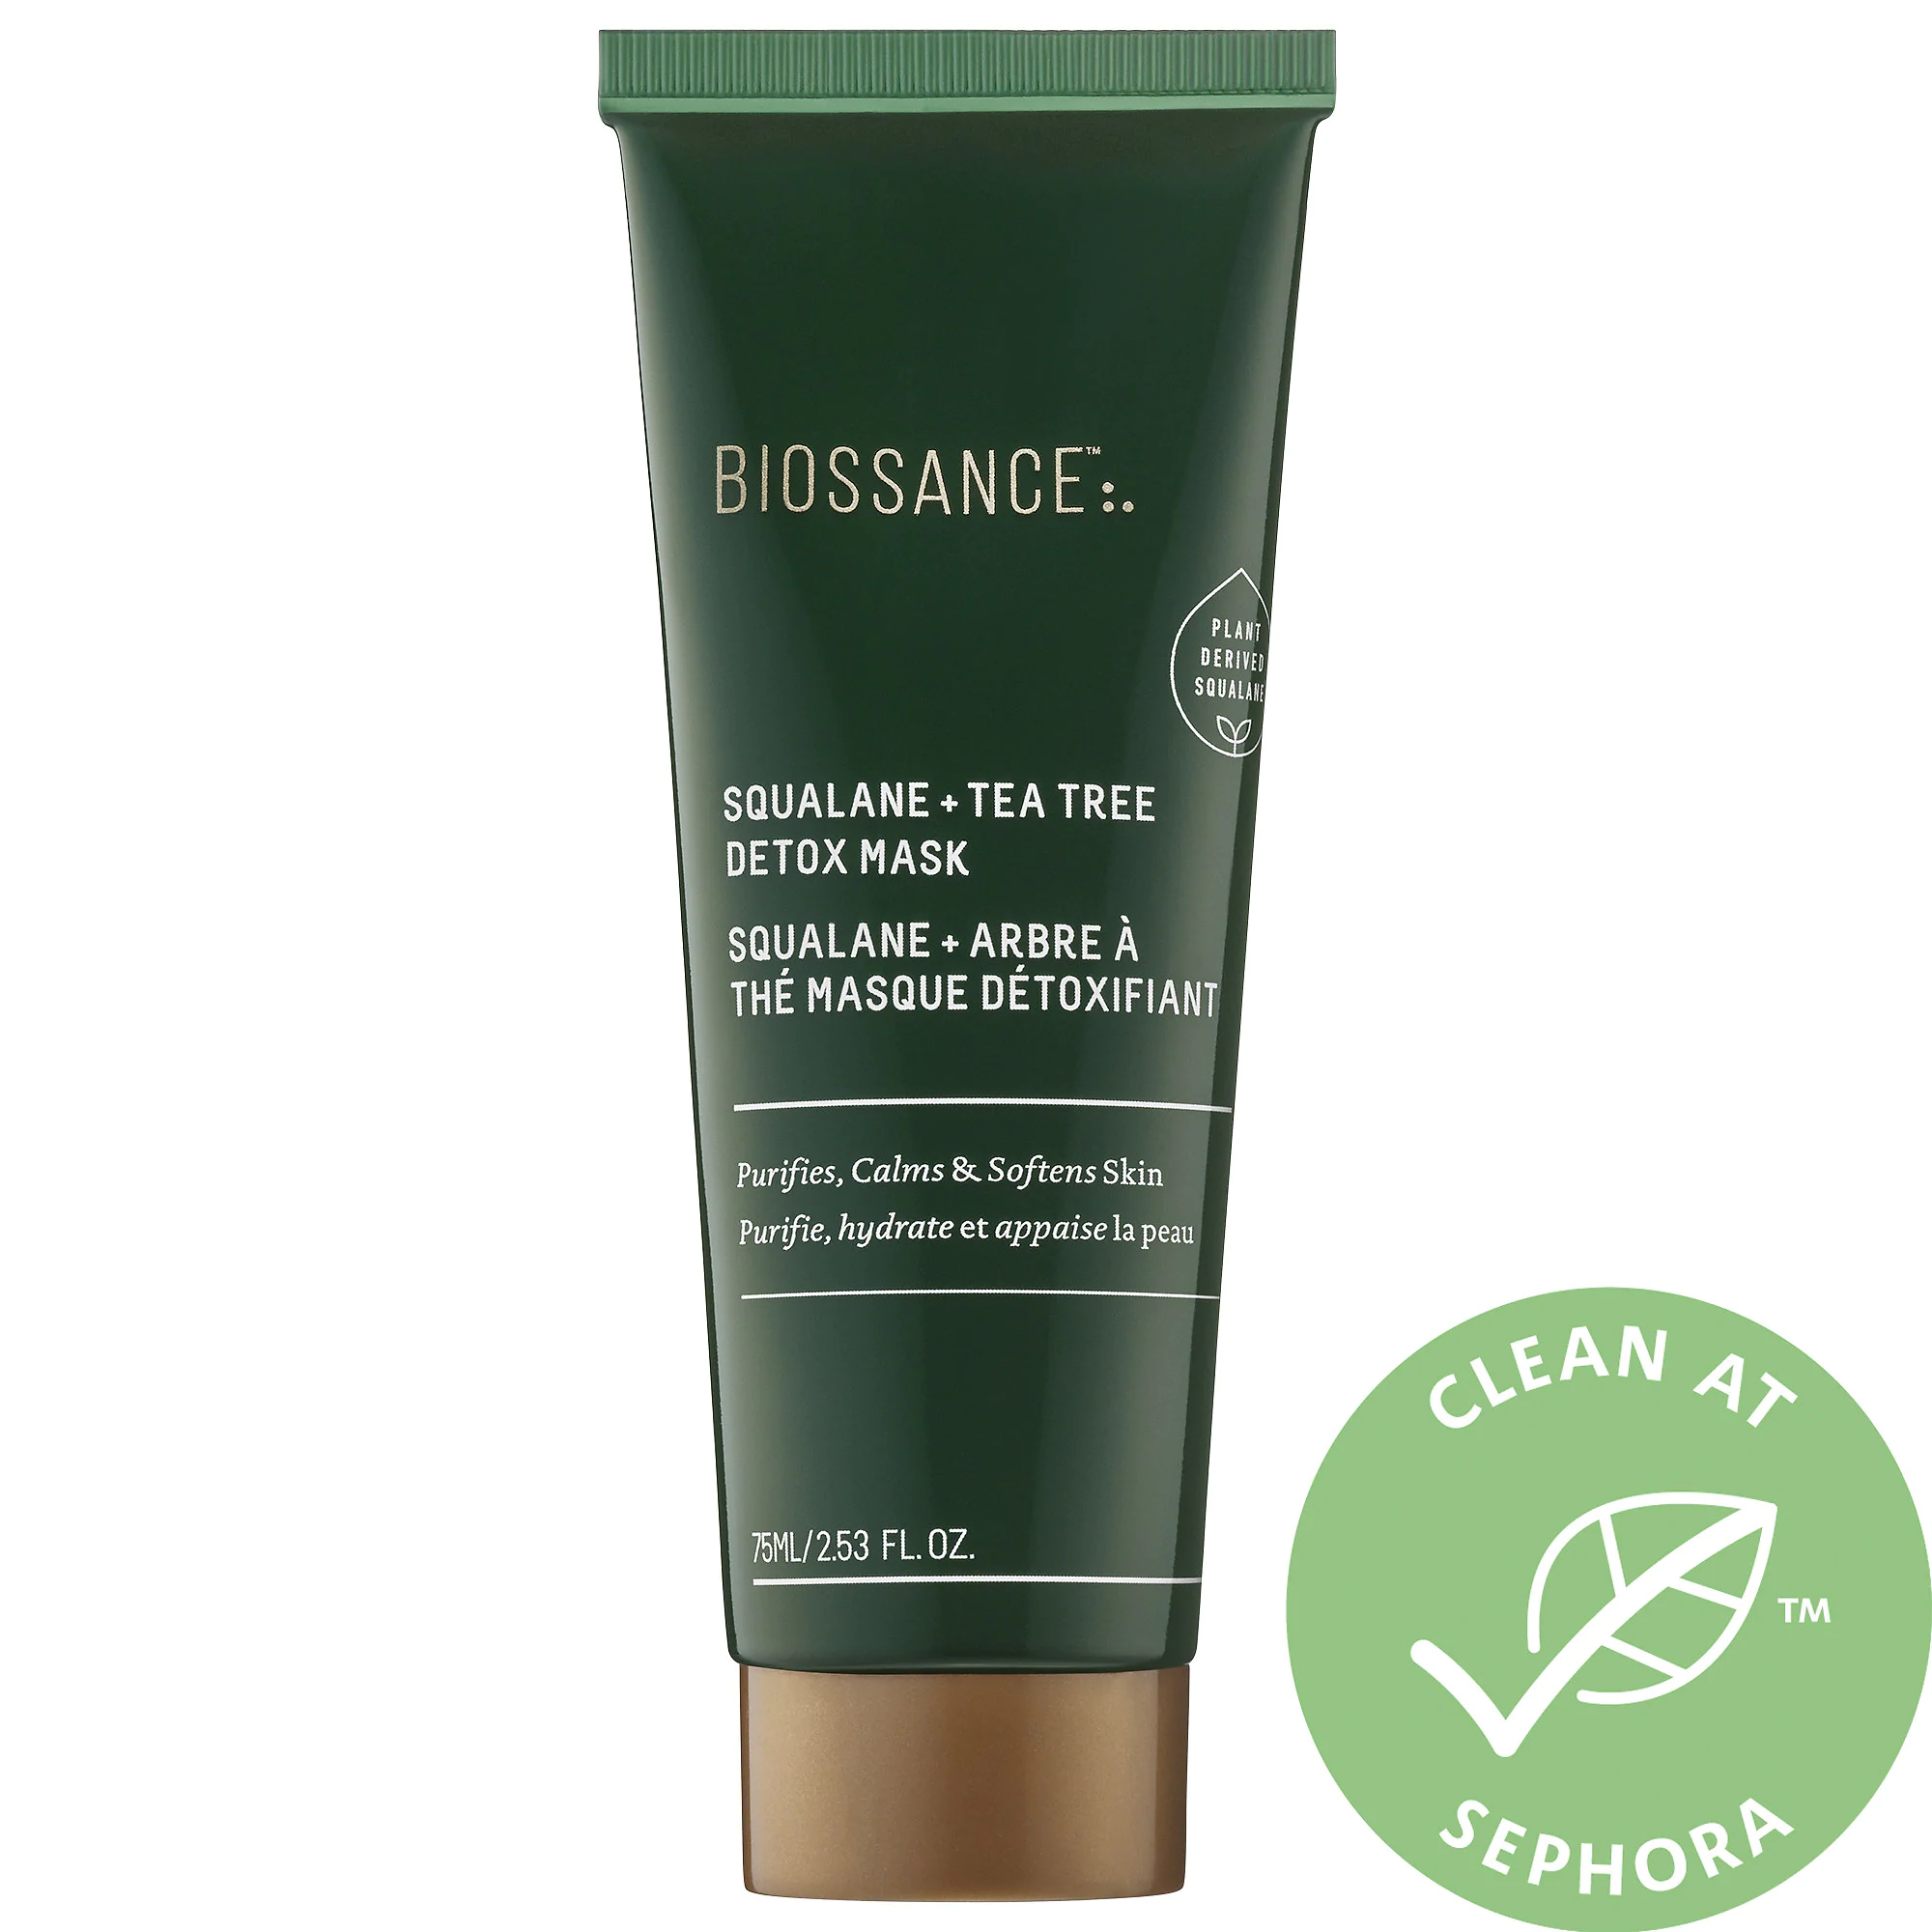 Biossance Squalane + Tea Tree Detox Mask